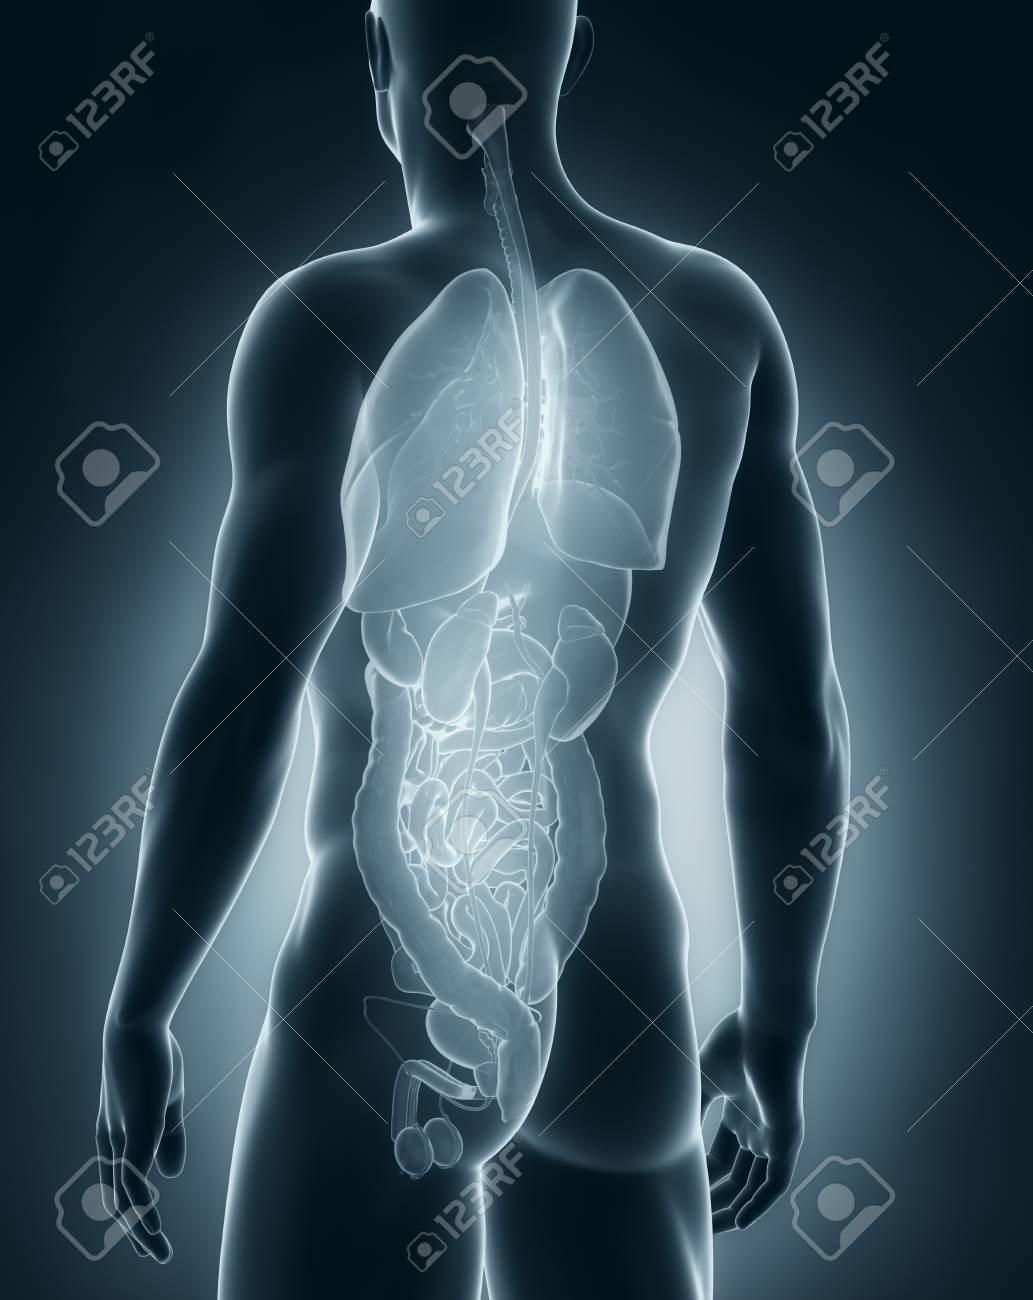 Male Organs Anatomy Posterior View Stock Photo Picture And Royalty